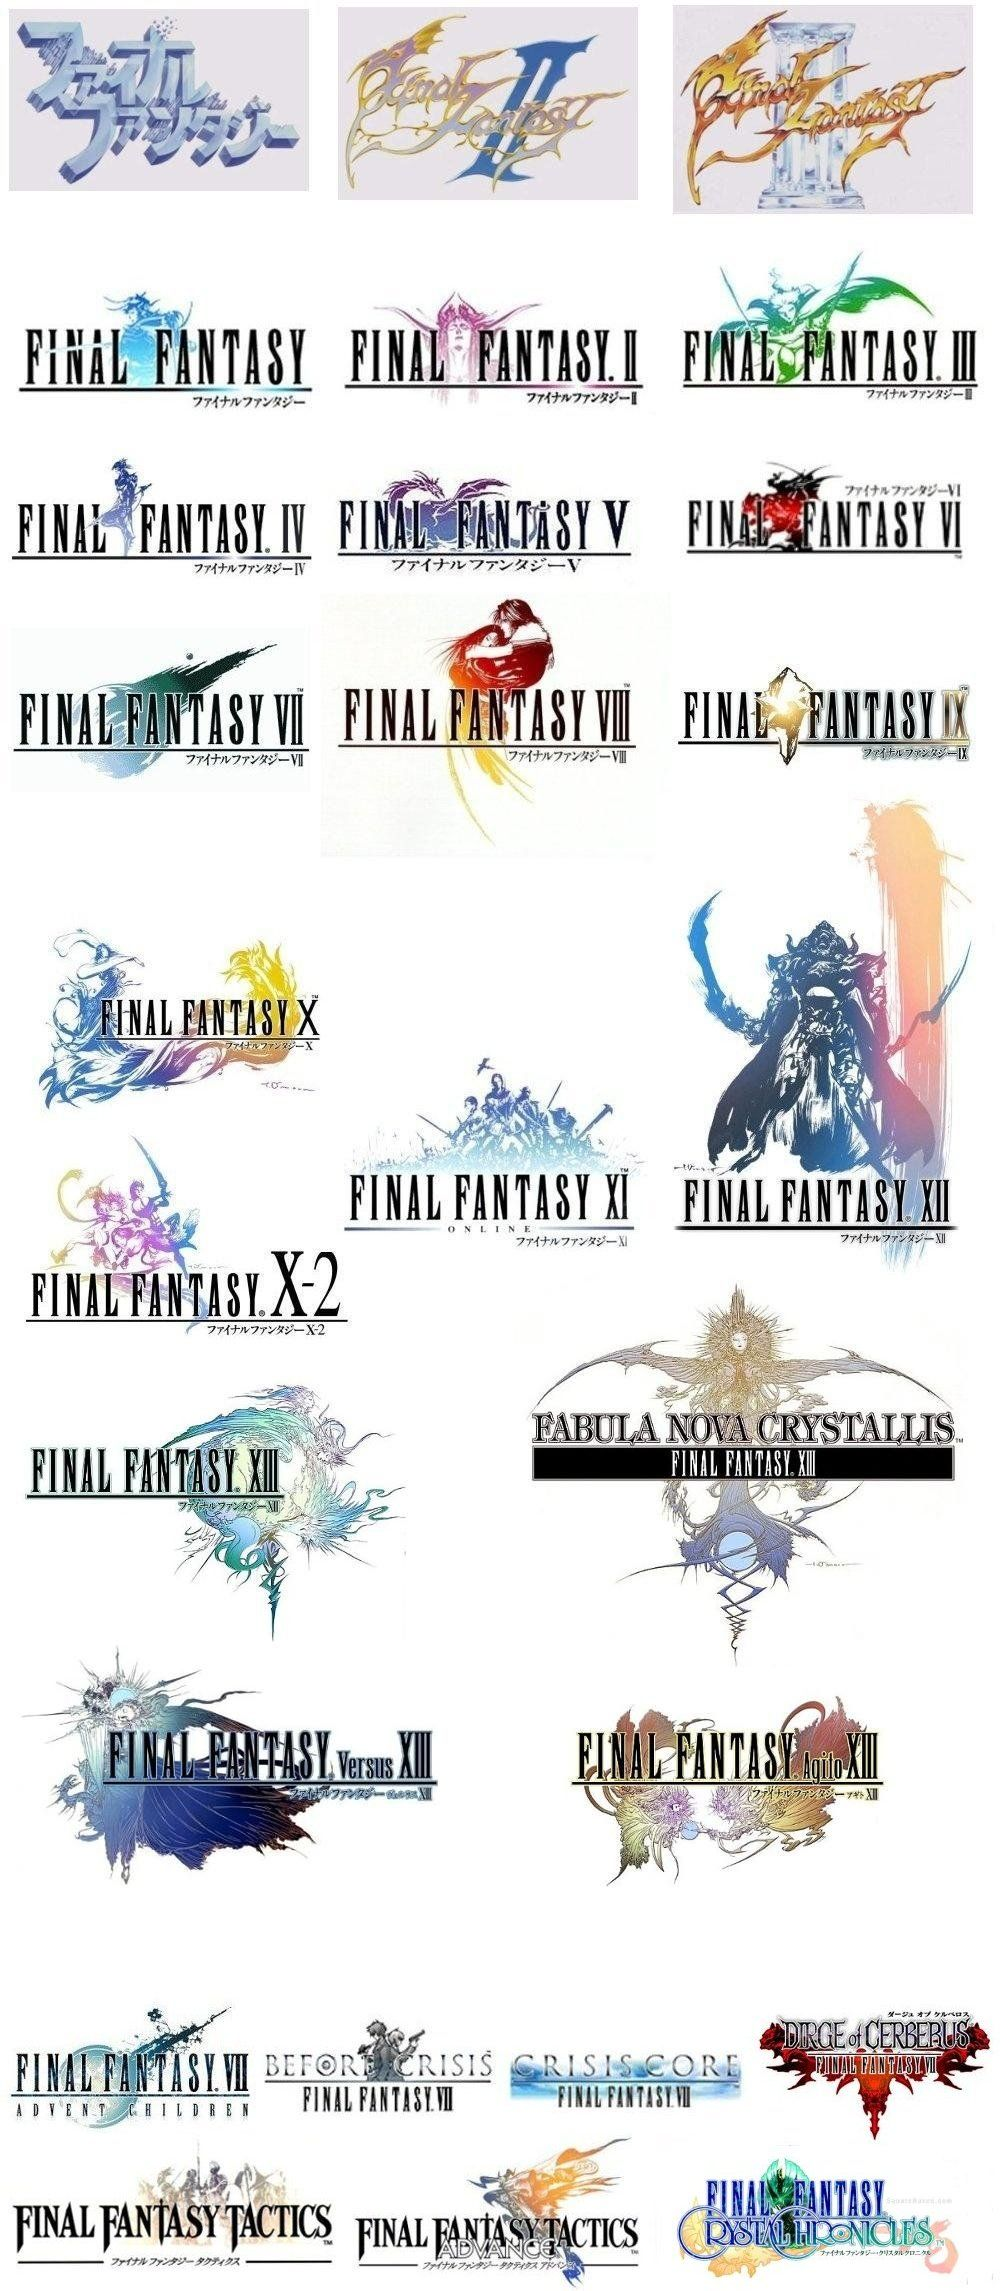 logo history of final fantasy Final fantasy logo, Text